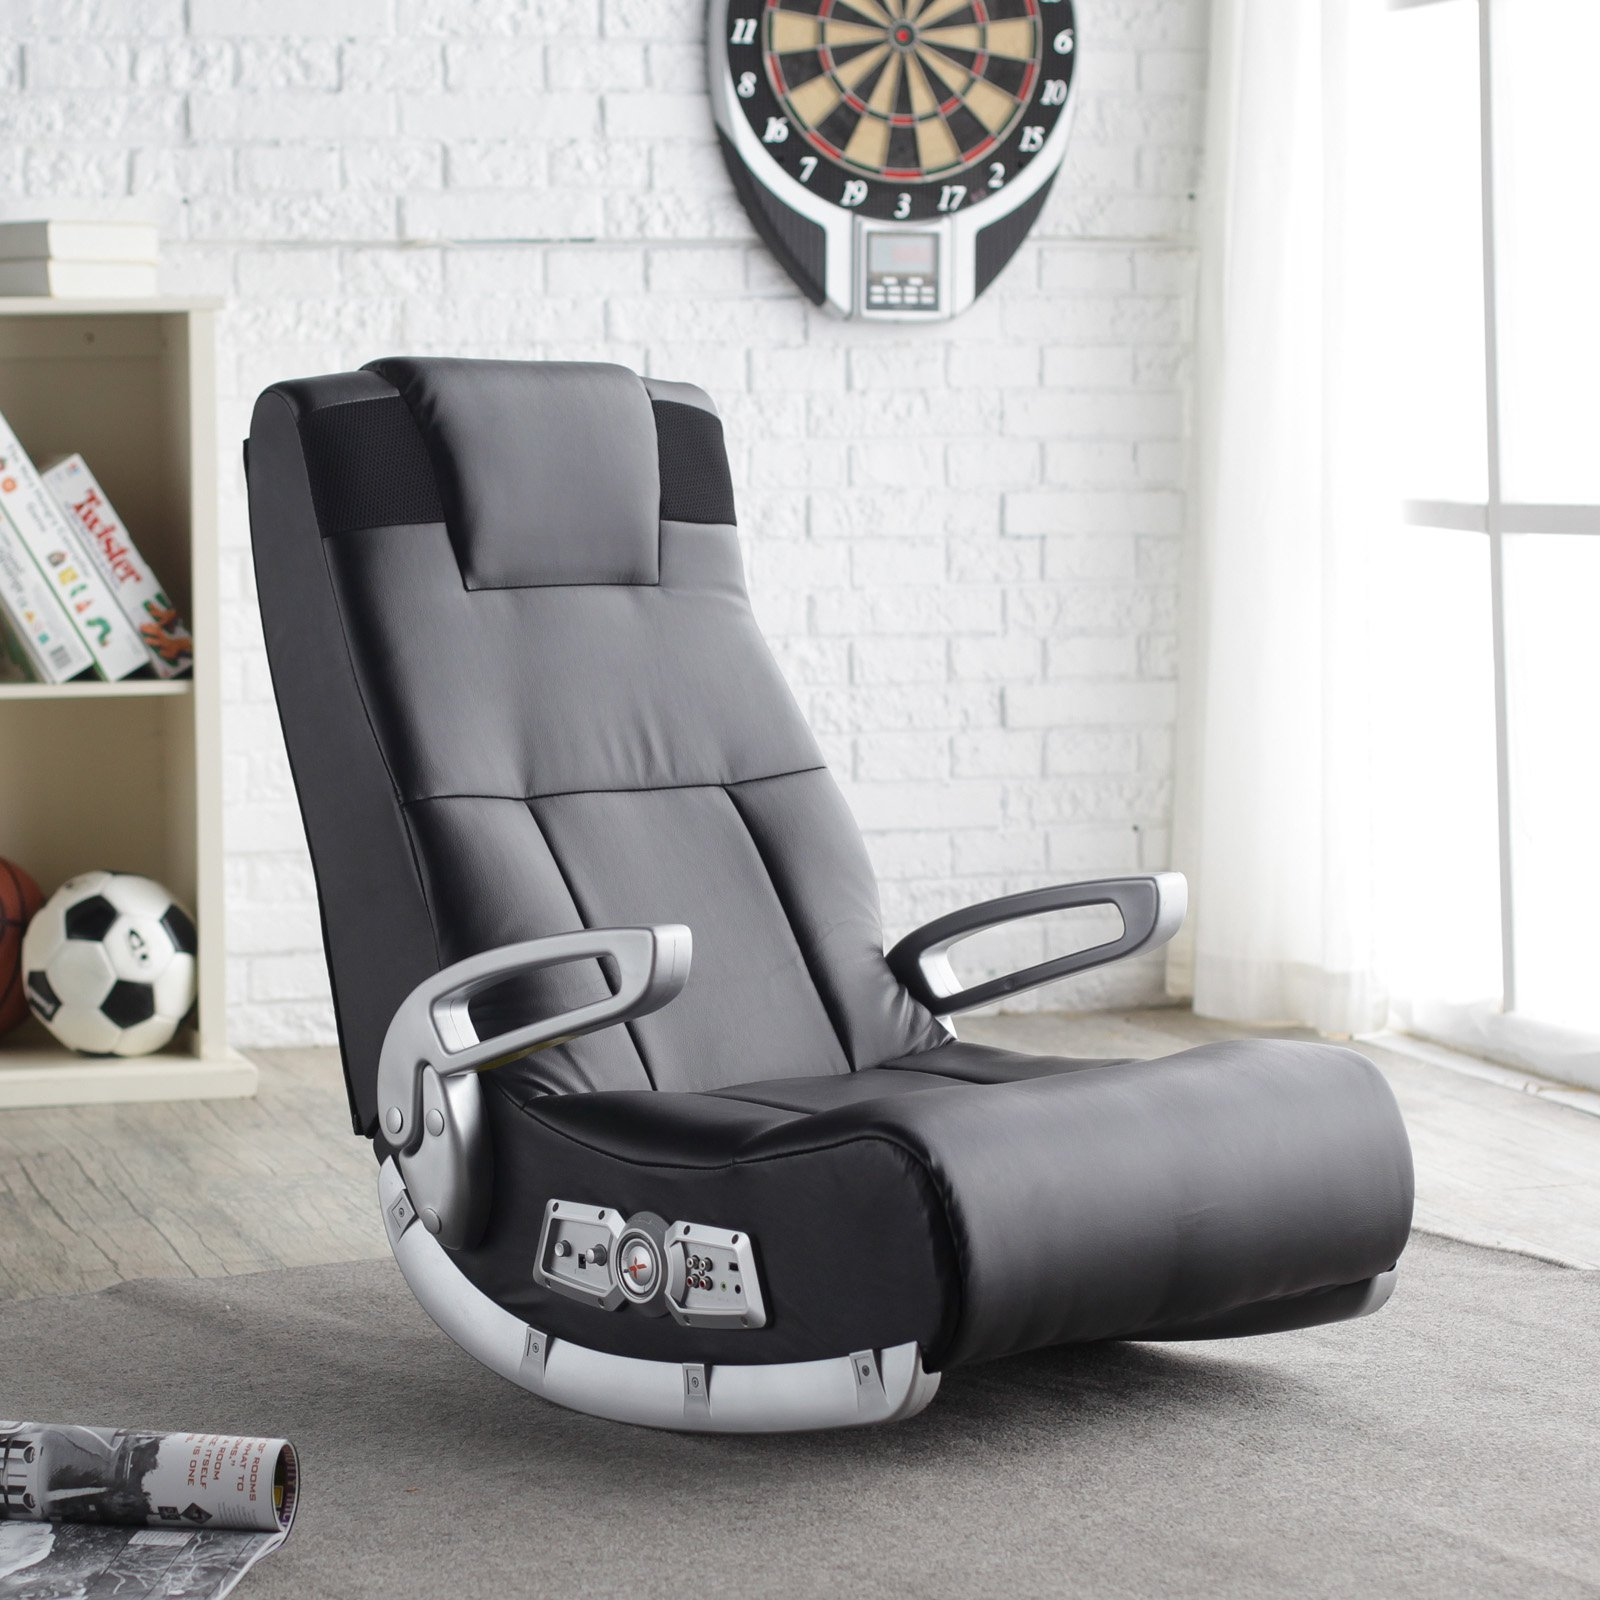 X Rocker II Wireless Video Game Chair 5143601